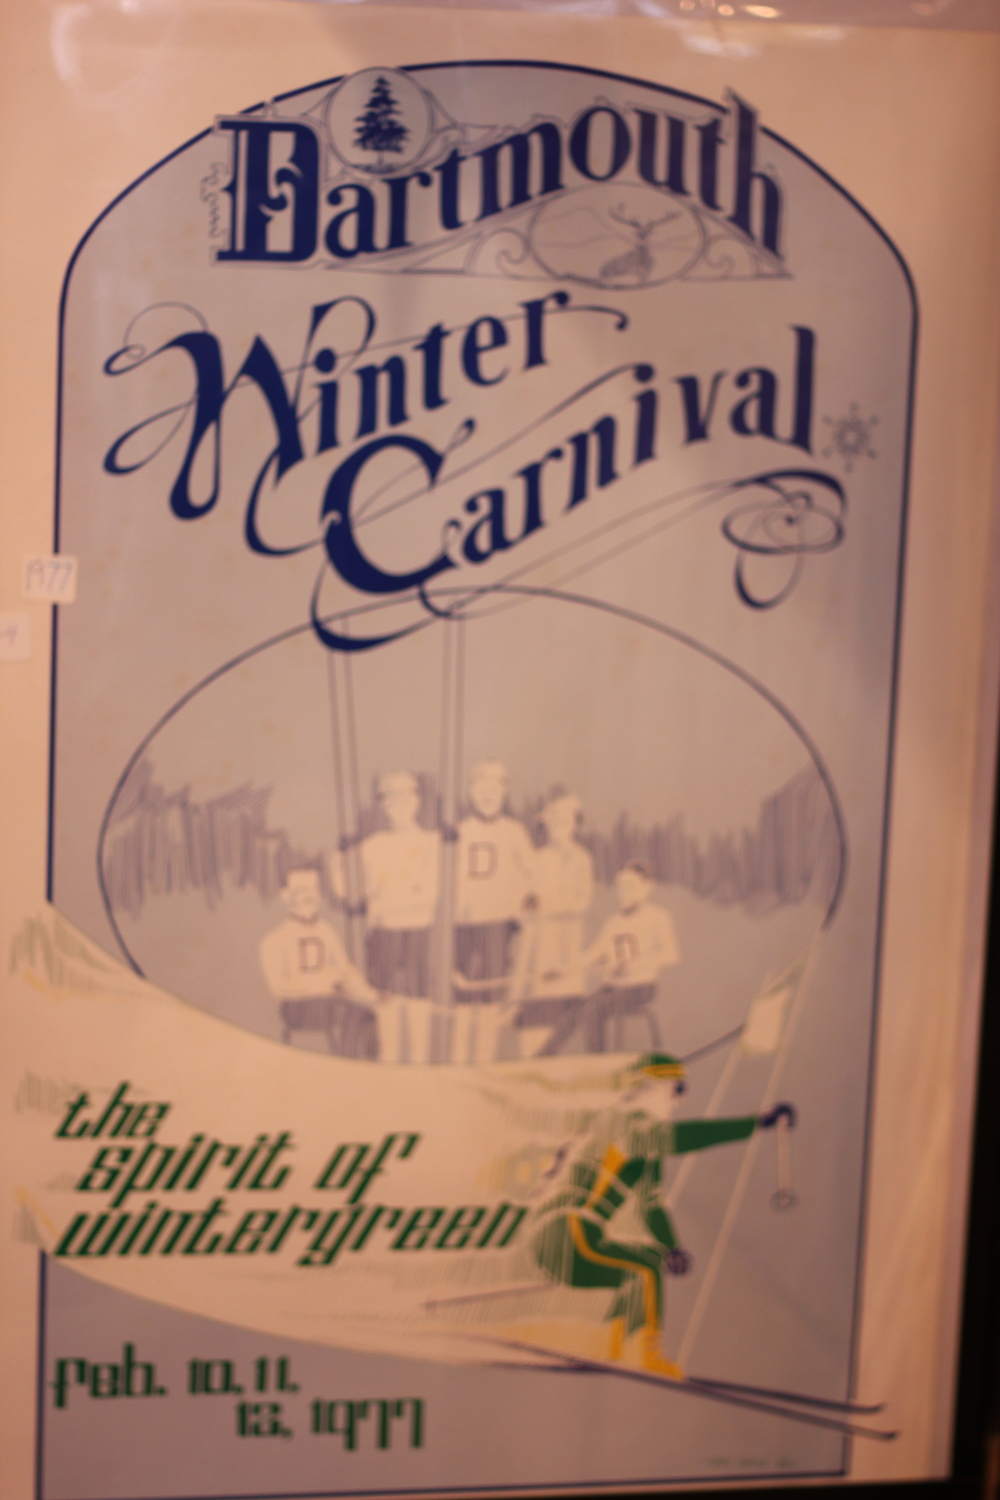 Dartmouth Winter Carnival 1977